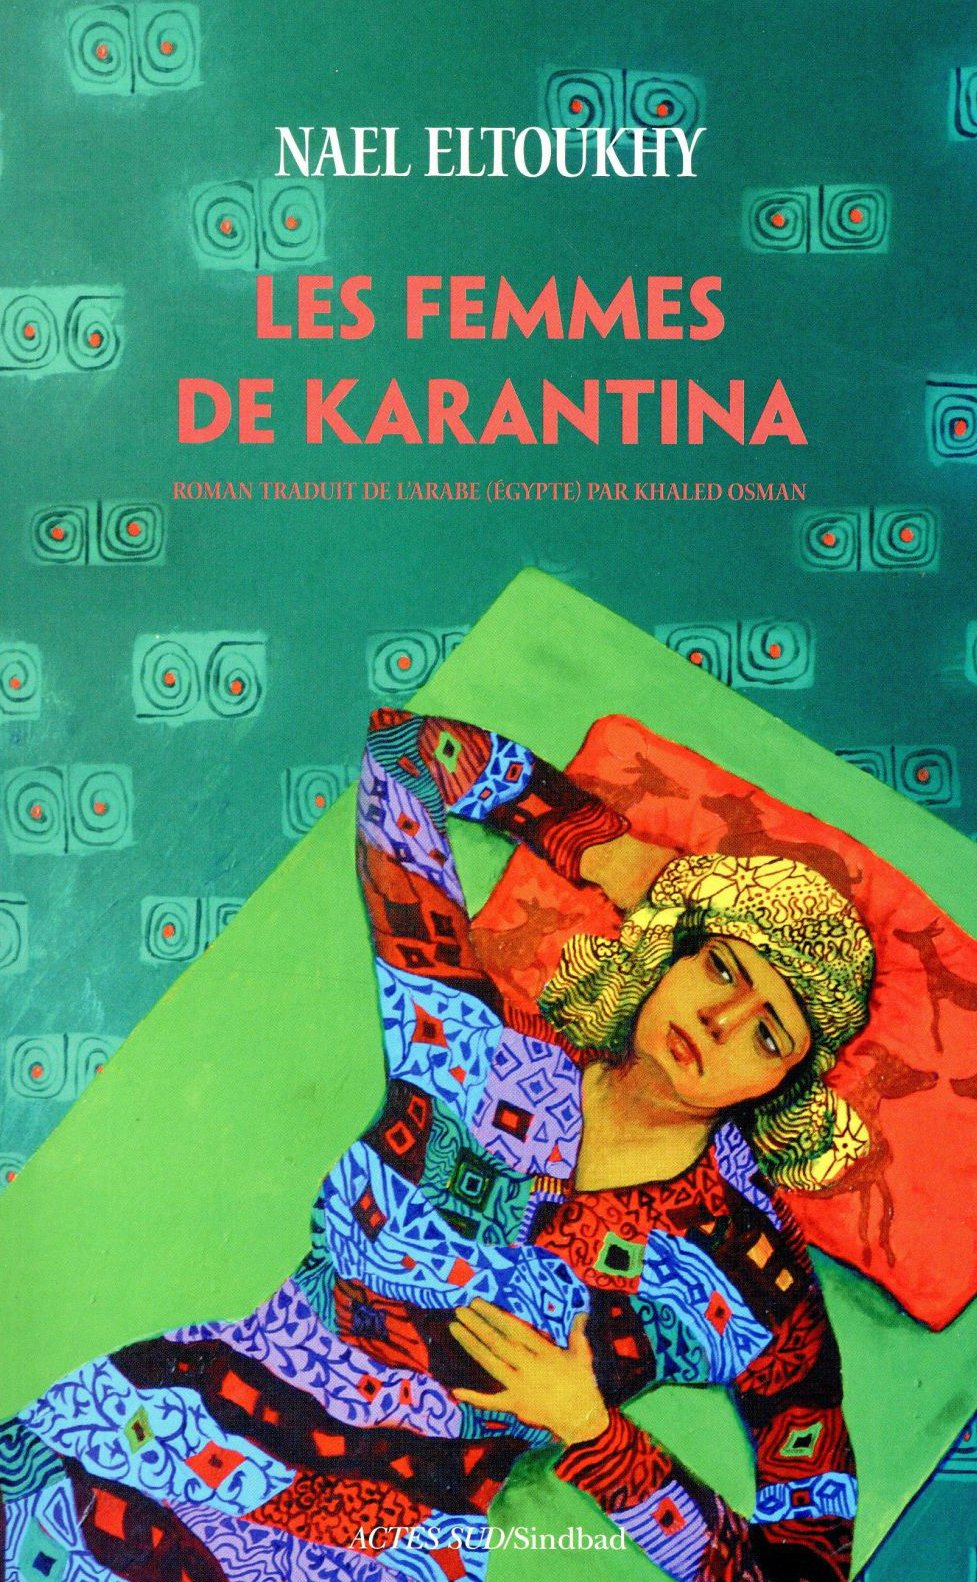 The French edition of Nael el-Toukhy's Women of Karantina.